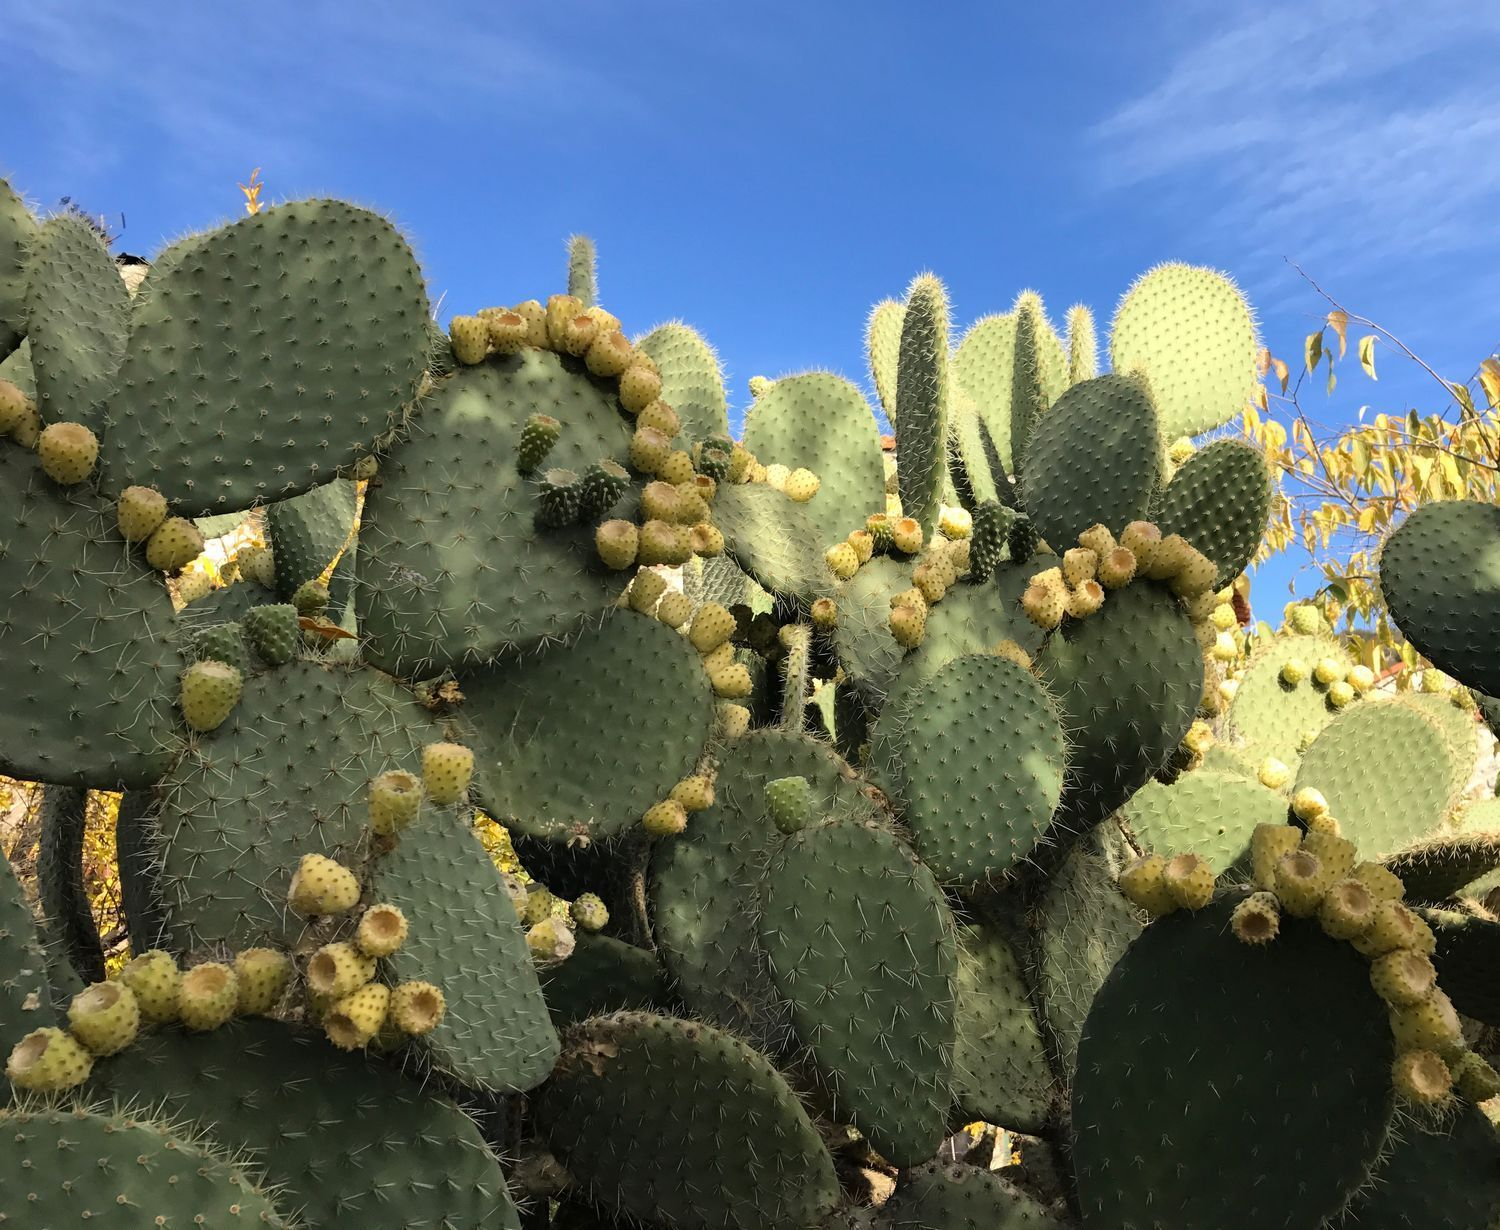 grand opuntia arborecent figue de barbarie comestible